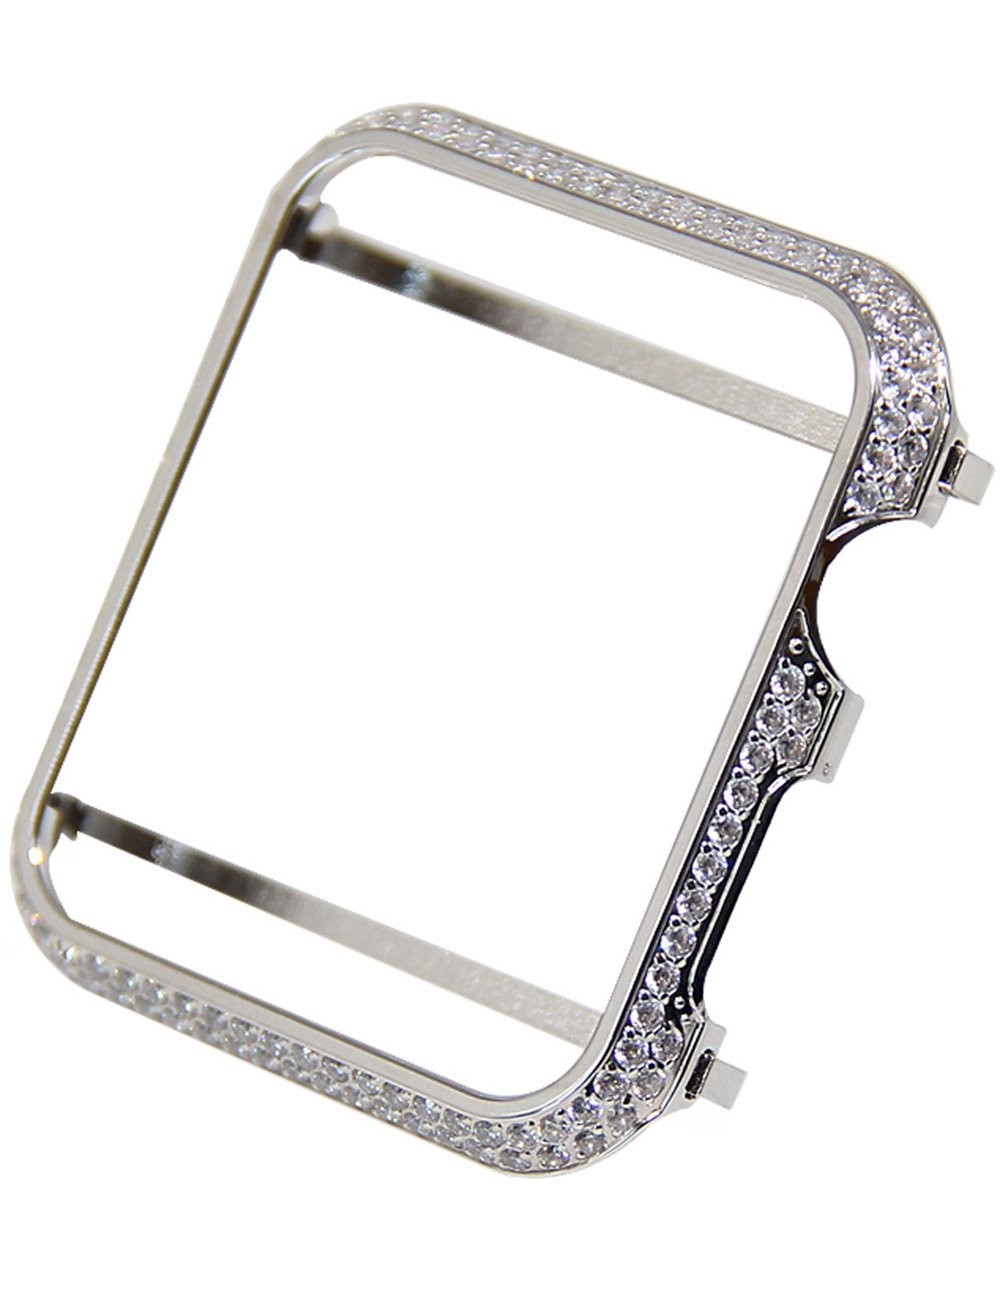 Callancity 38mm Crystal Diamonds Case face Cover Bezel Compatible with Apple Watch Series 1 2 3 (Platinum for Ceramic Edition)